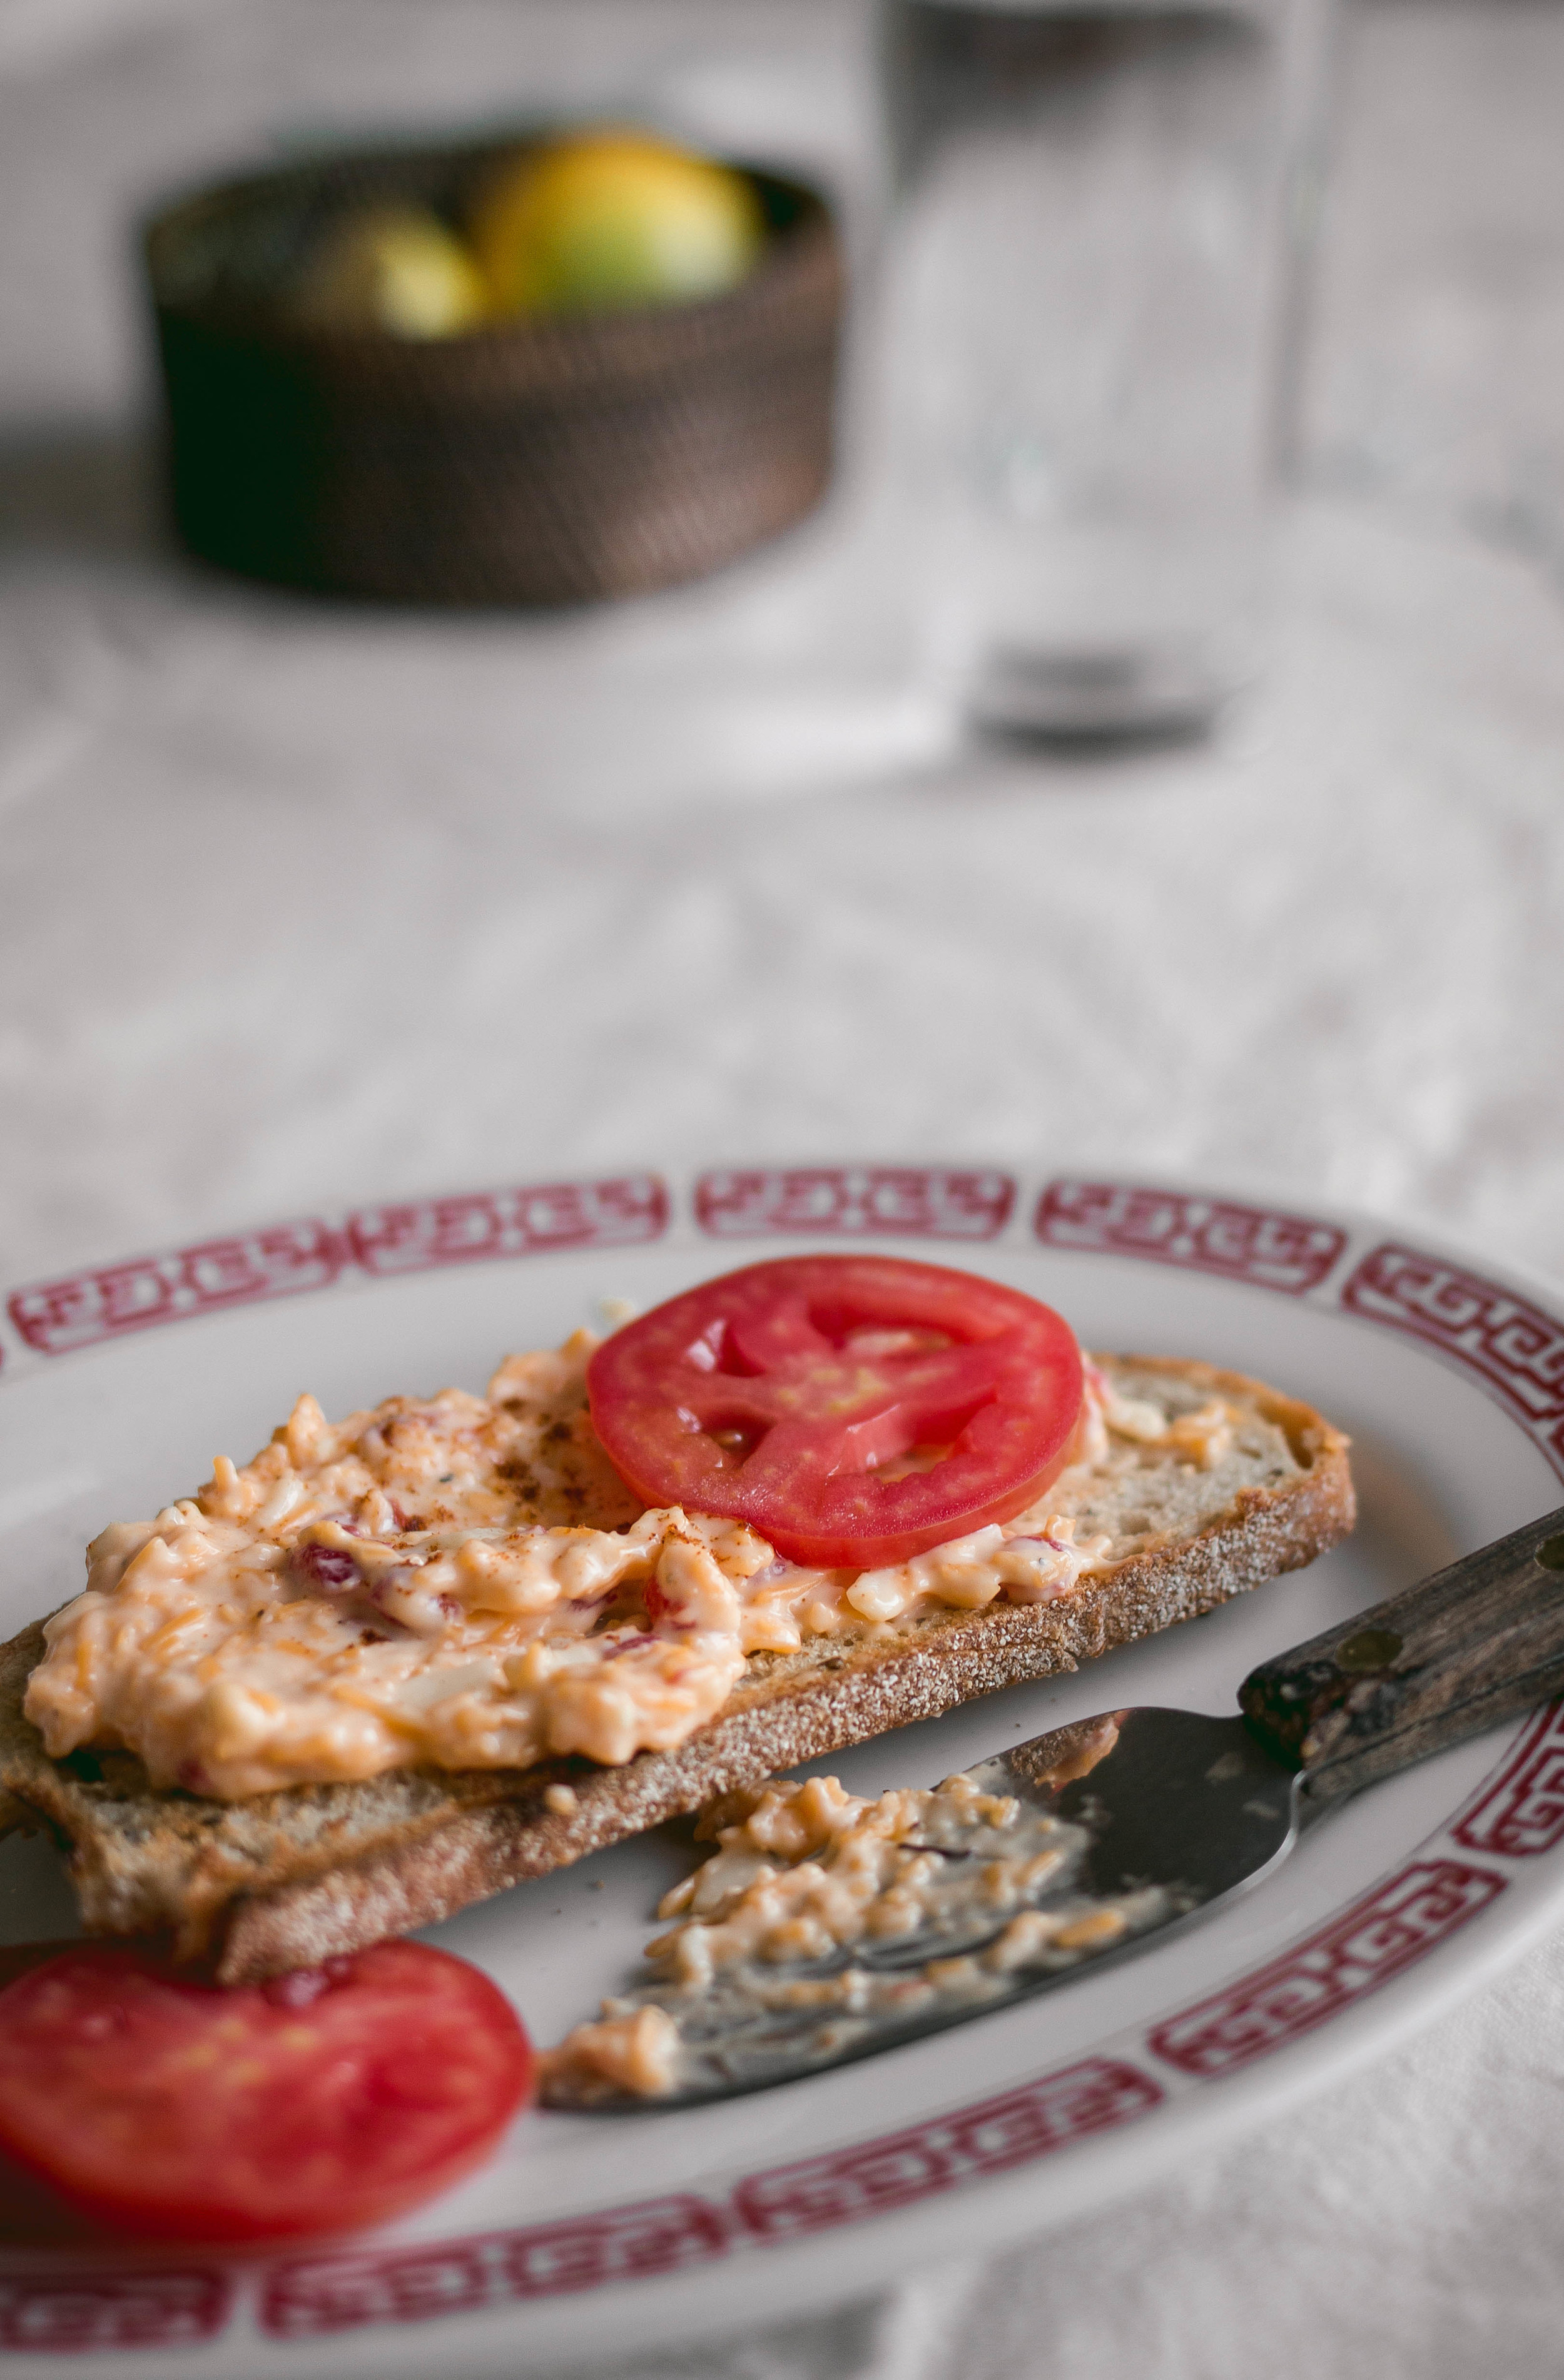 Pimiento cheese on toasted rye bread   by fit for the soul